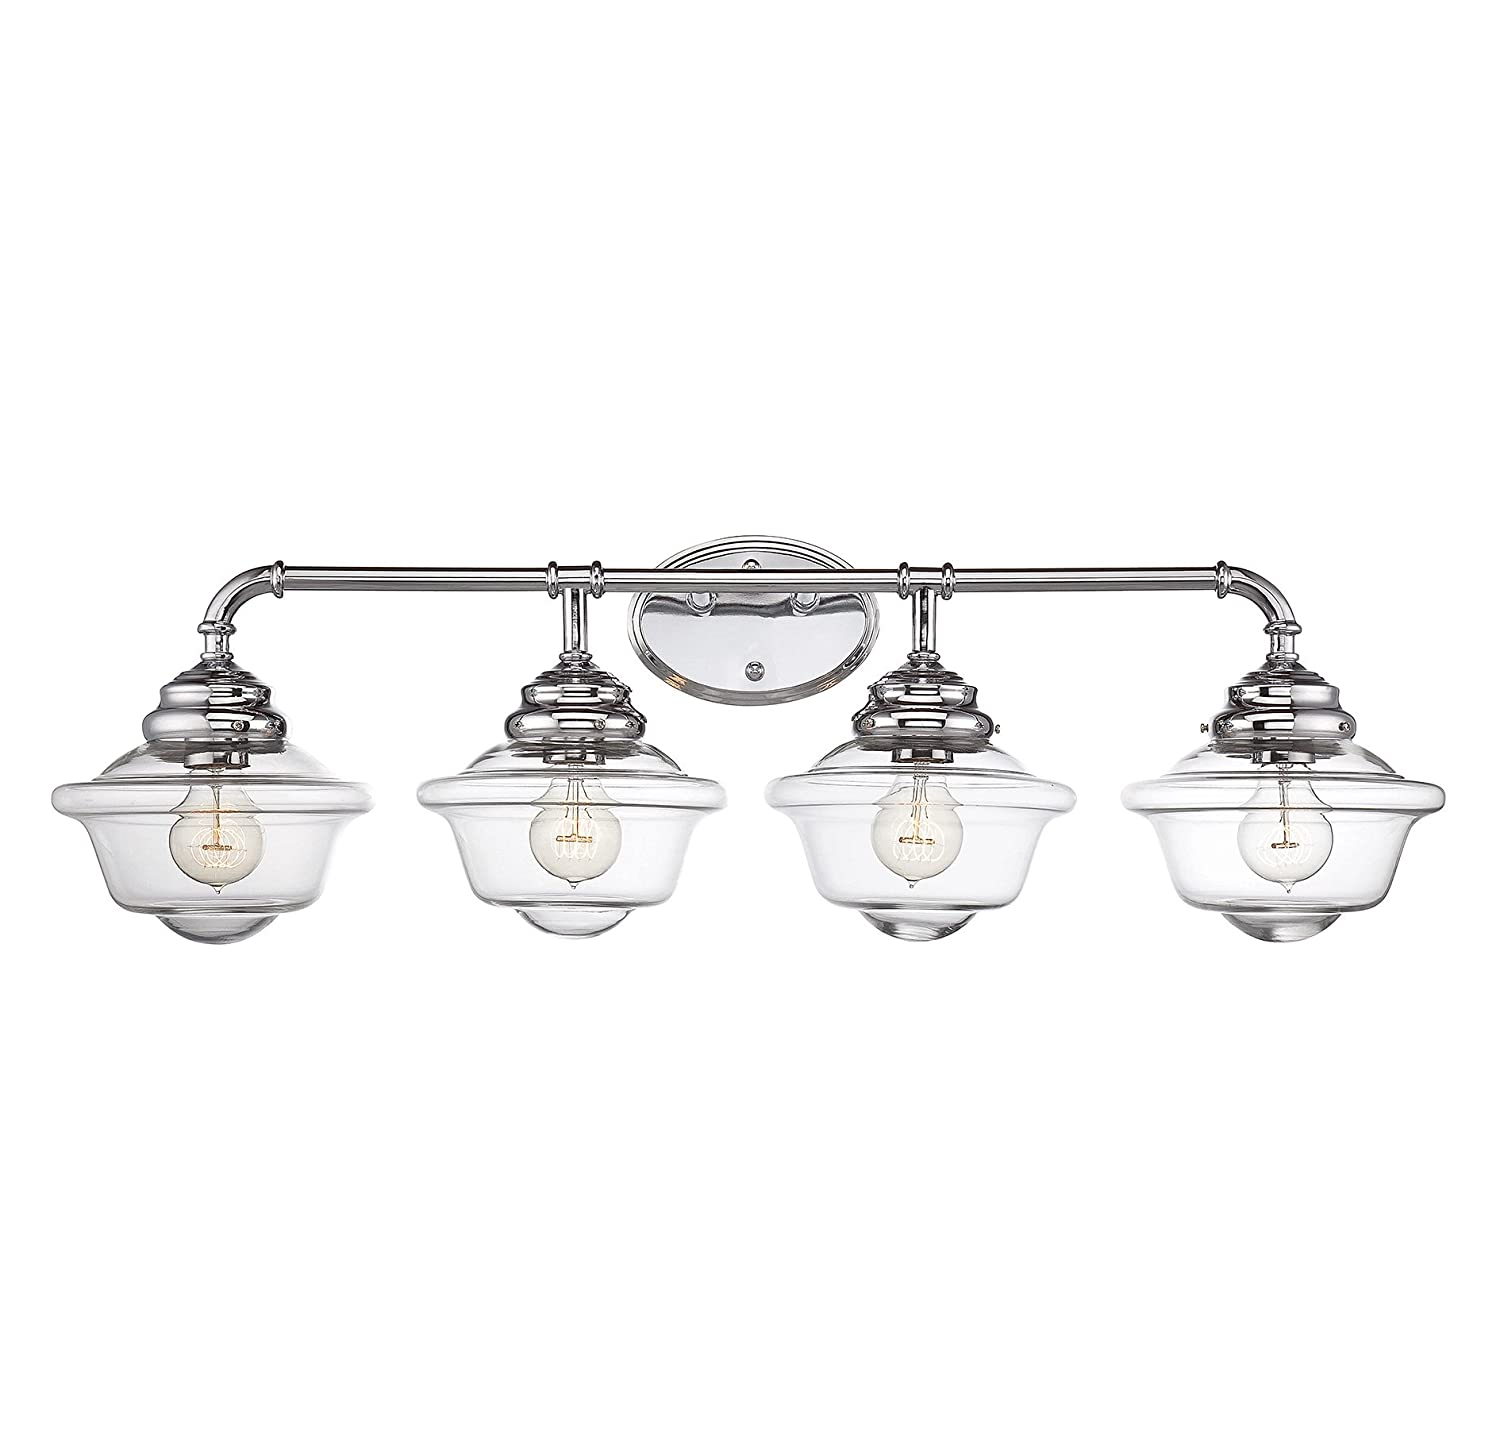 Savoy House Fairfield Light Vanity Bar In Chrome - Savoy bathroom light fixtures